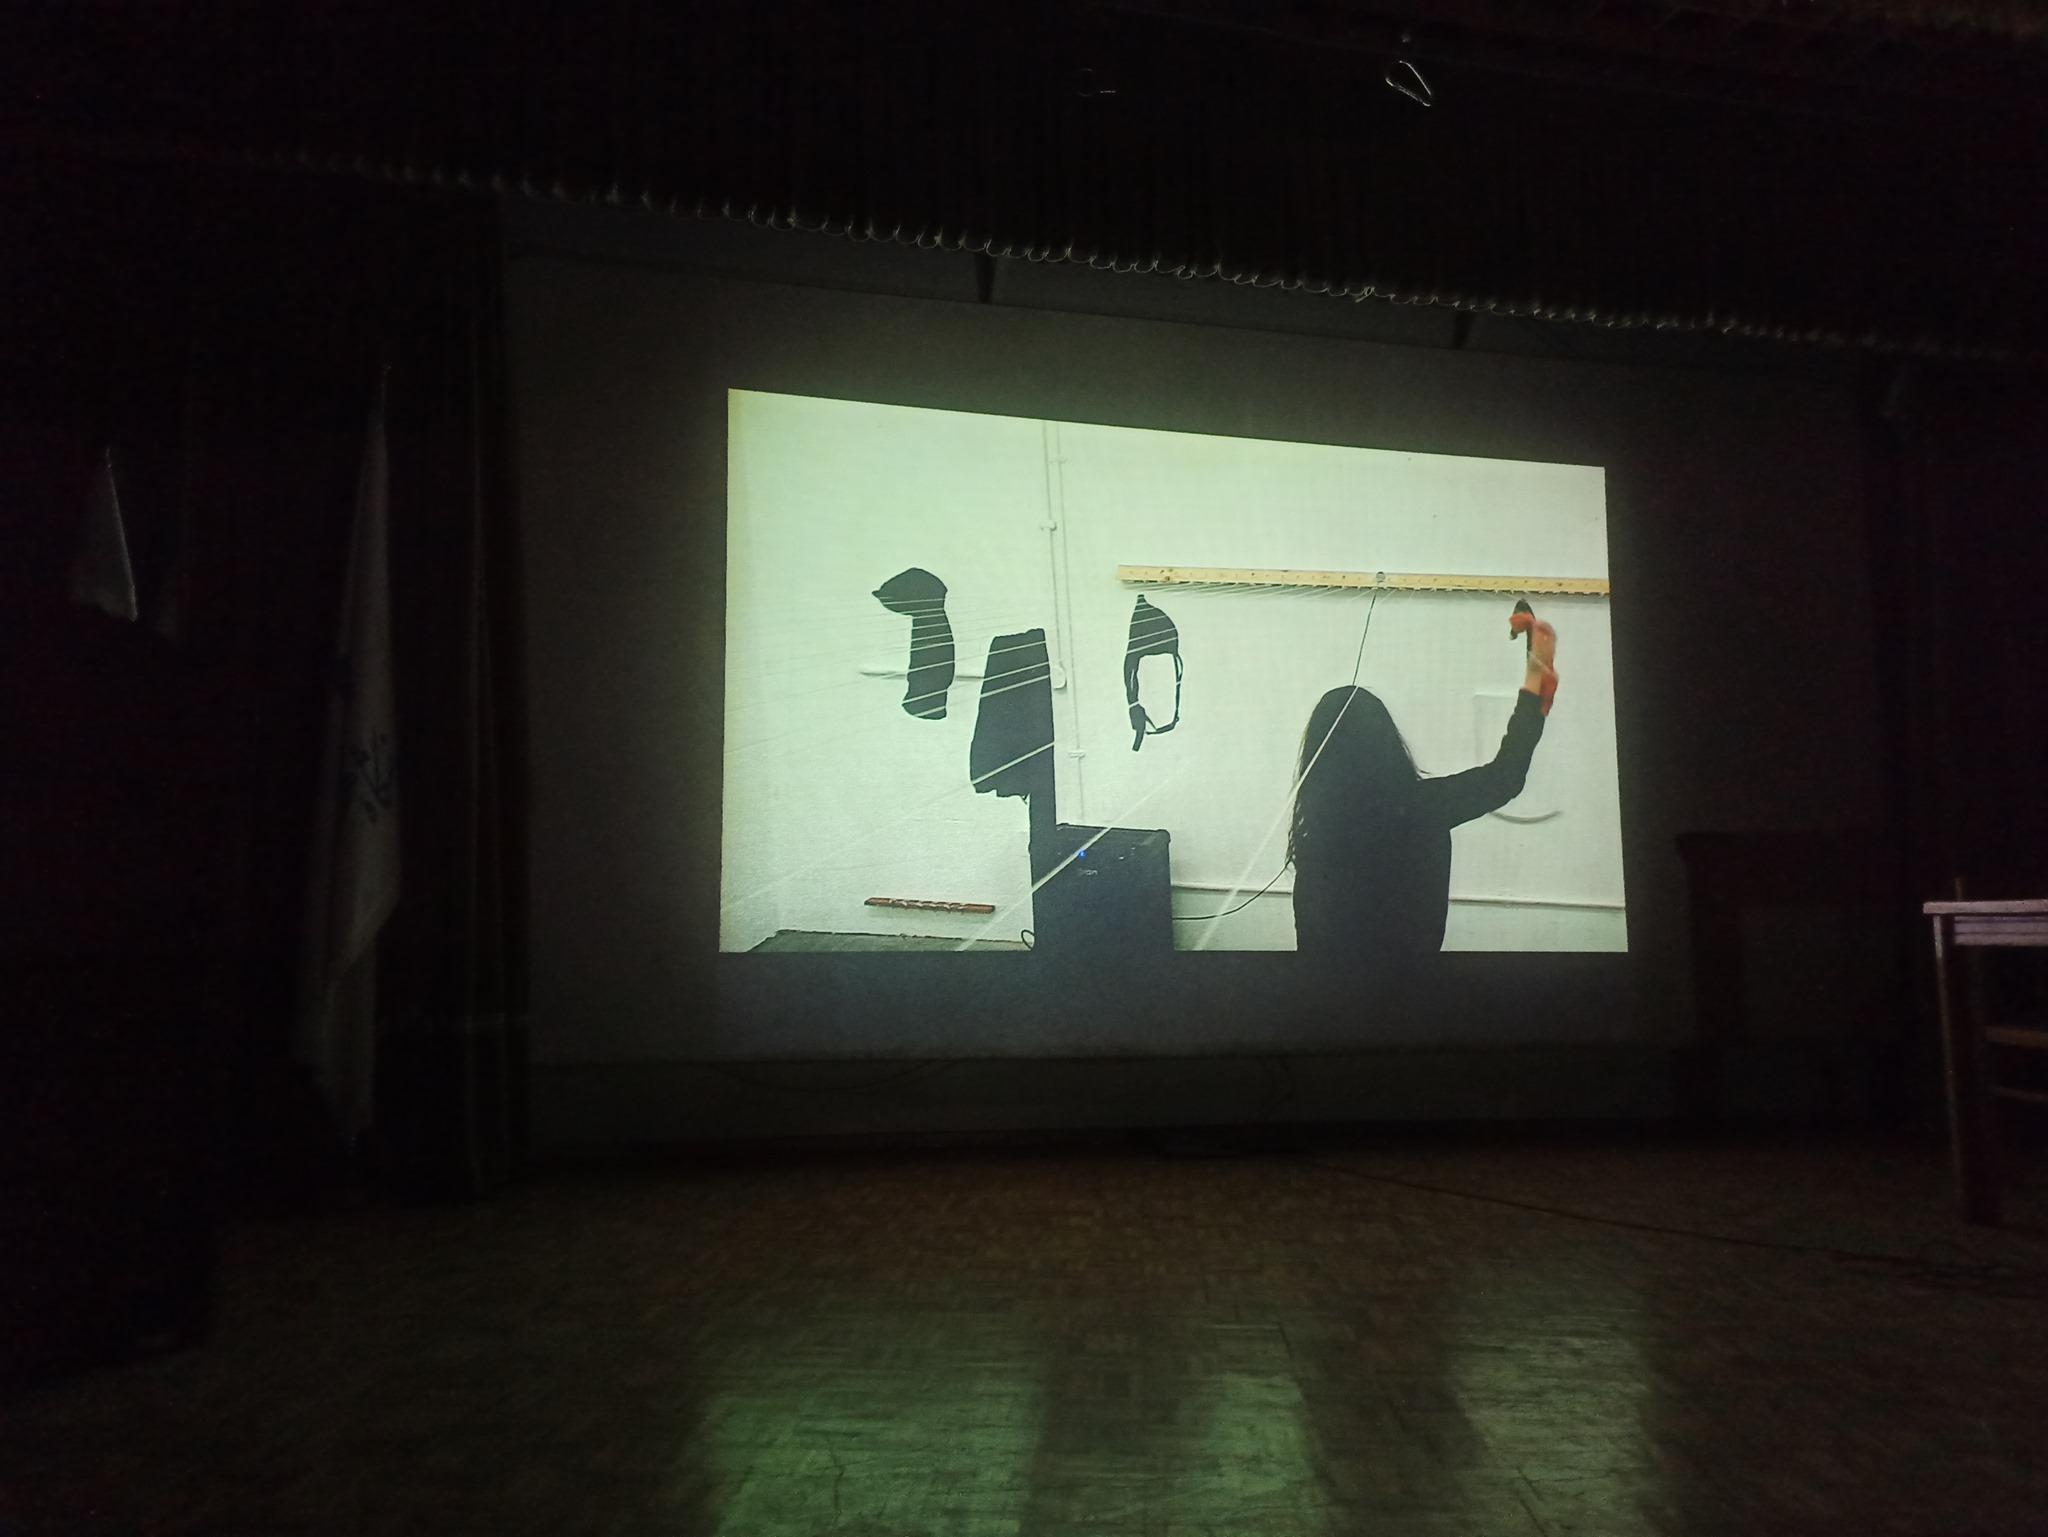 Screening Paadmaan Video Event 2019 at Tehran University of Art, December 14., Tehran/ IRAN